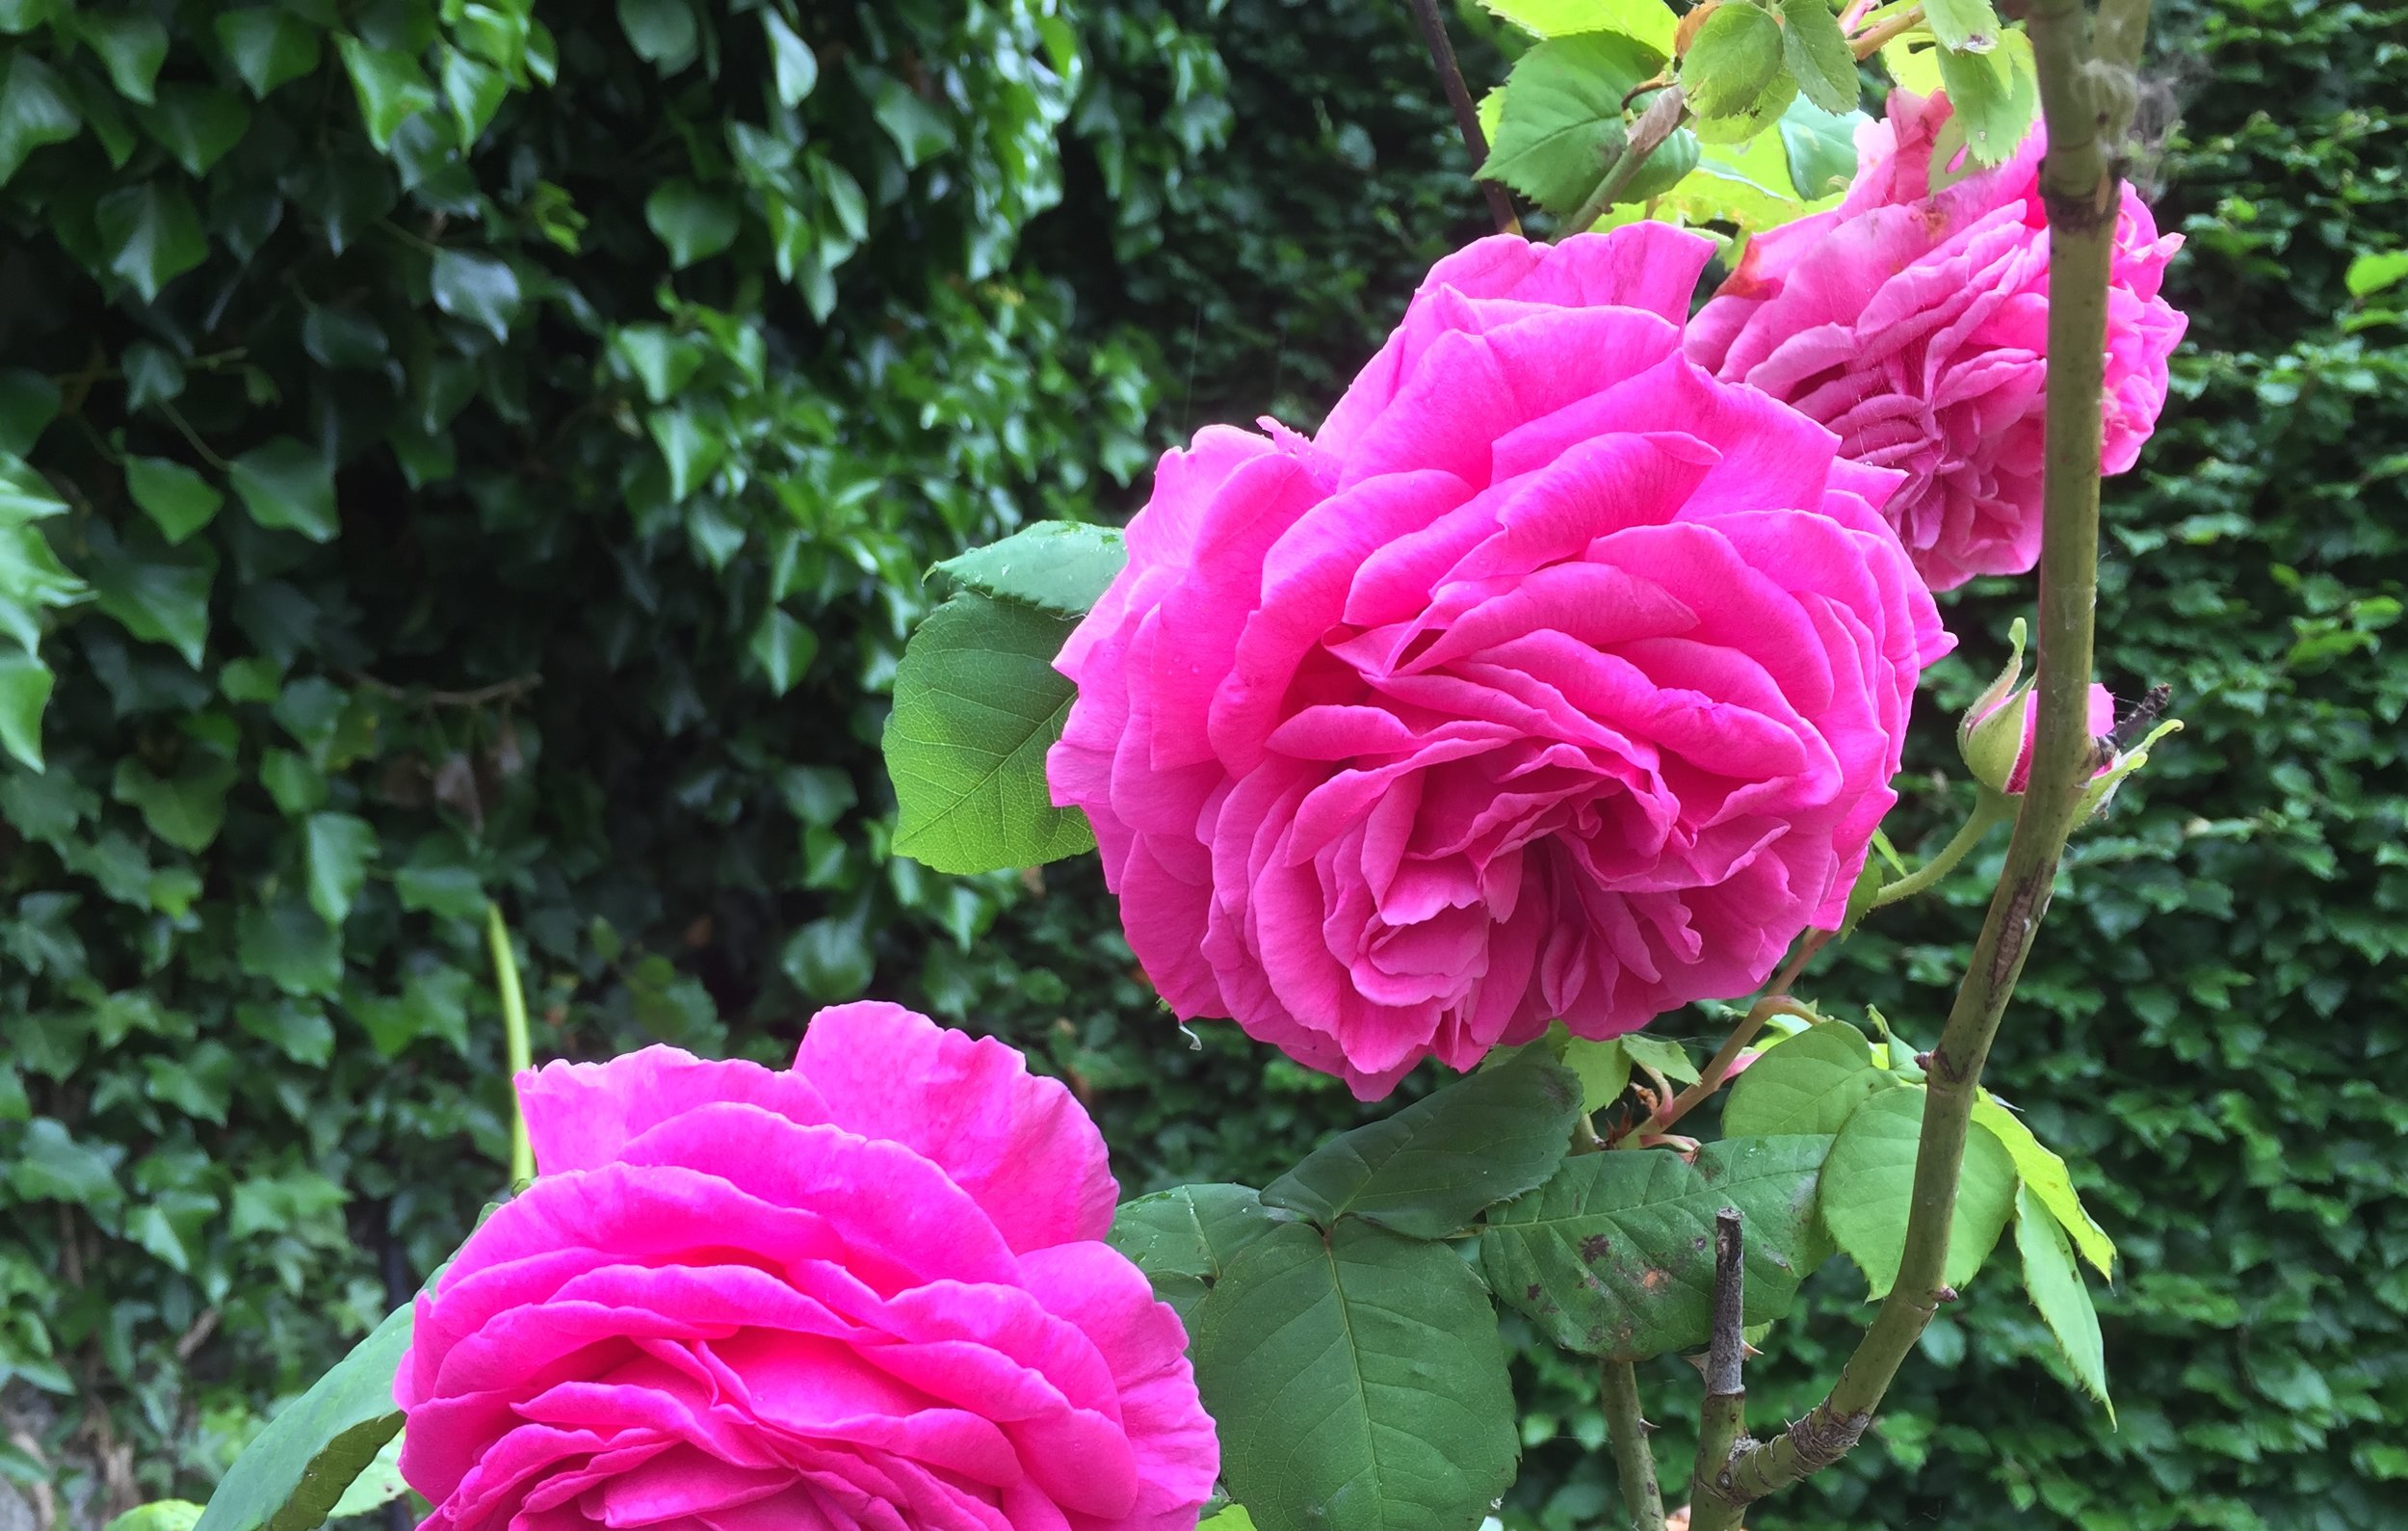 Madame Isaac Pereire is a Bourbon rose and was named after a French banker's wife in the late 19th century. I keep this one in a large container by a garden bench where I can sit and appreciate its huge, deep pink blooms and divine scent.